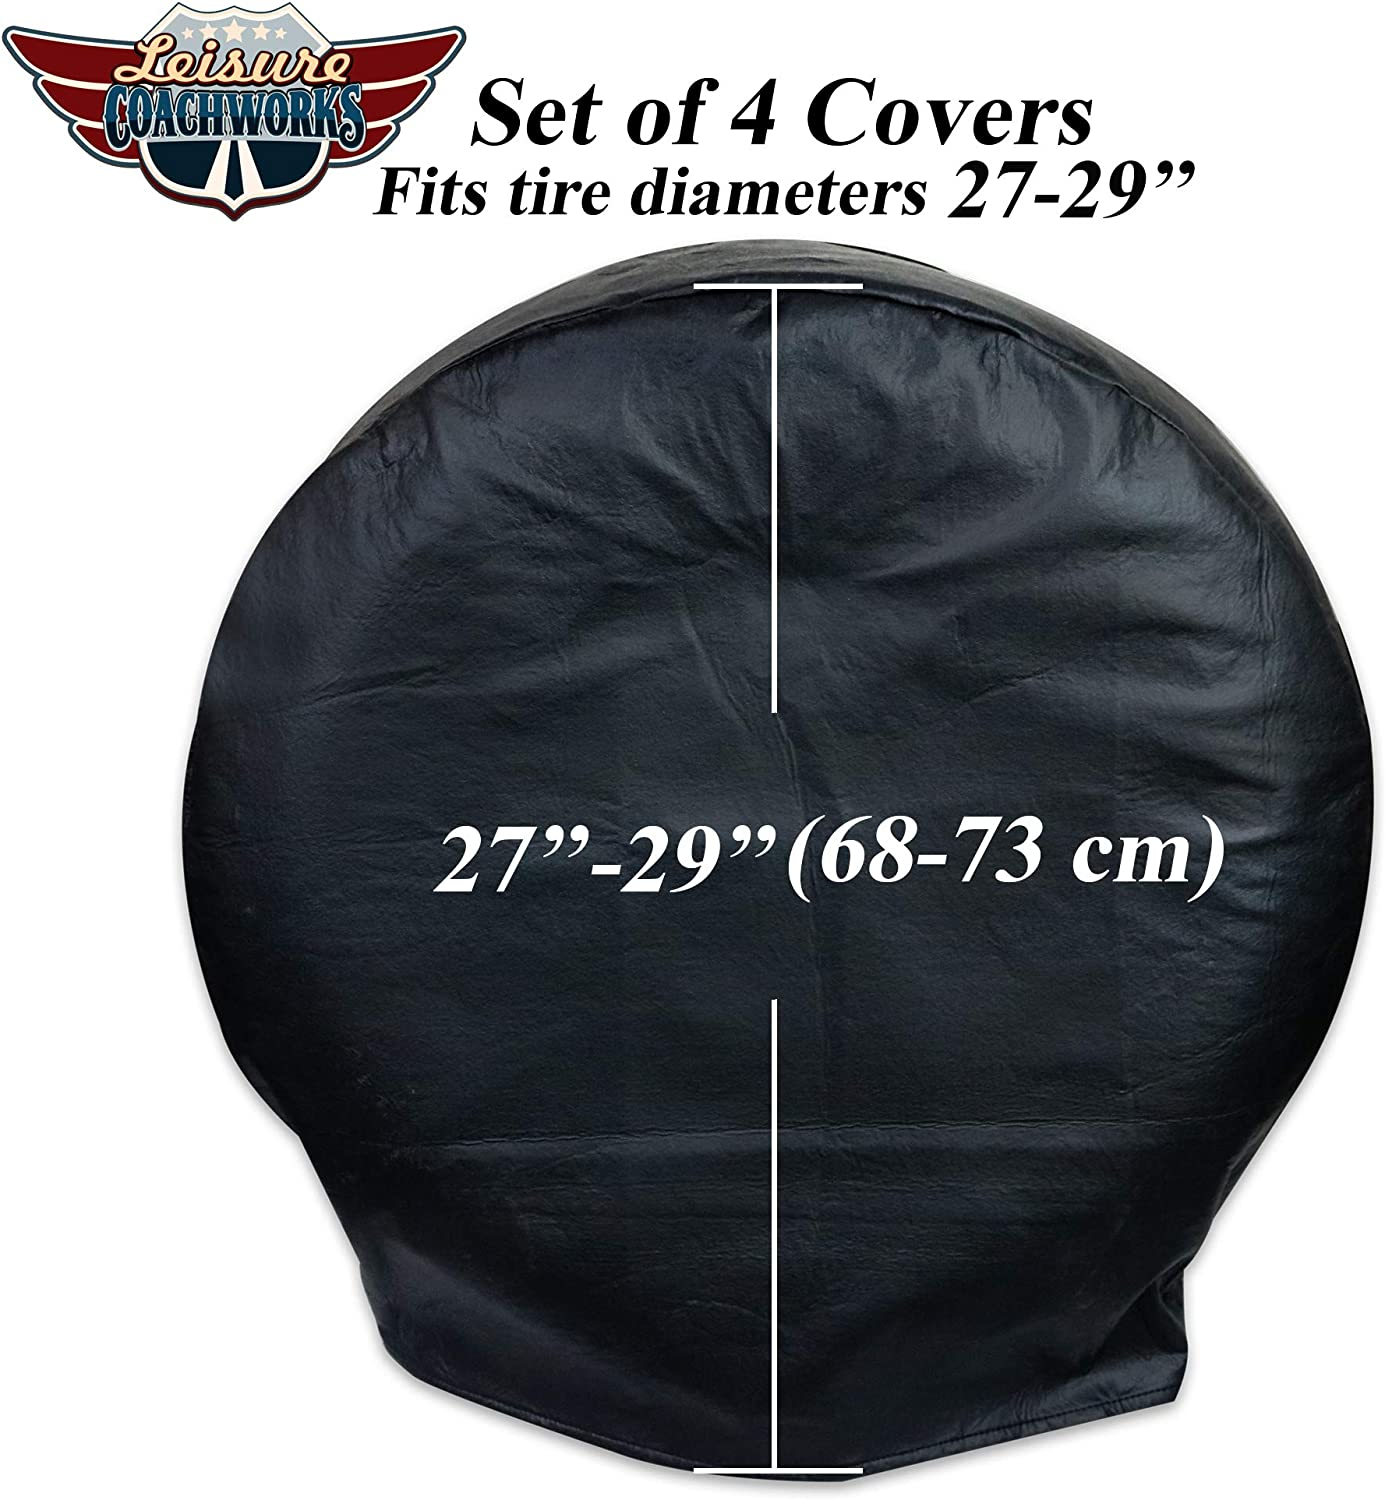 Leisure Coachworks Tire Covers for RV Wheel Set of 4 Motorhome Wheel Covers Waterproof Oxford Cotton Tire Protectors Tire Covers Fits 24 to 26 Tire Diameters